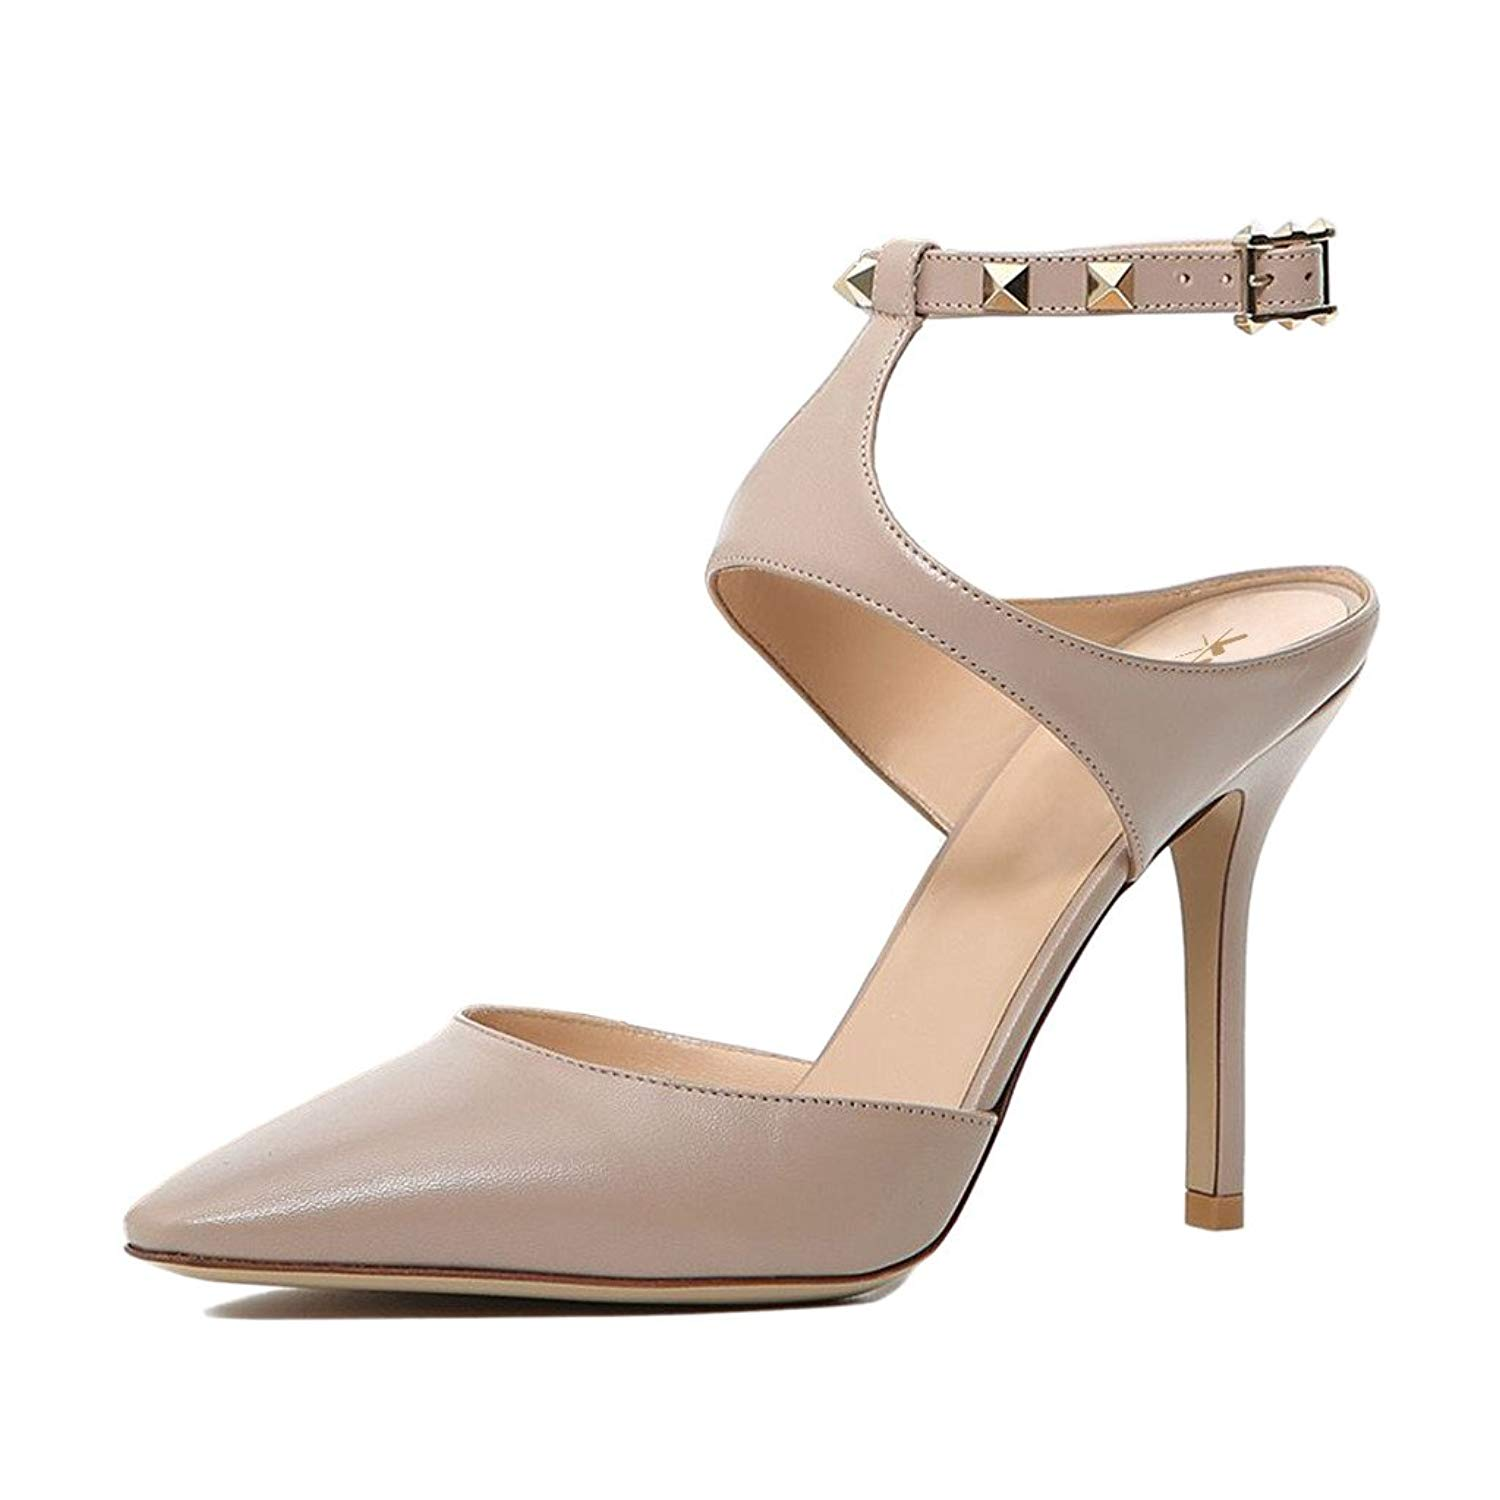 628bc0276f Get Quotations · XYD Elegance Women Pointed Toe Slingback Stilettos Studded  High Heel Sandals Strappy Dress Shoes